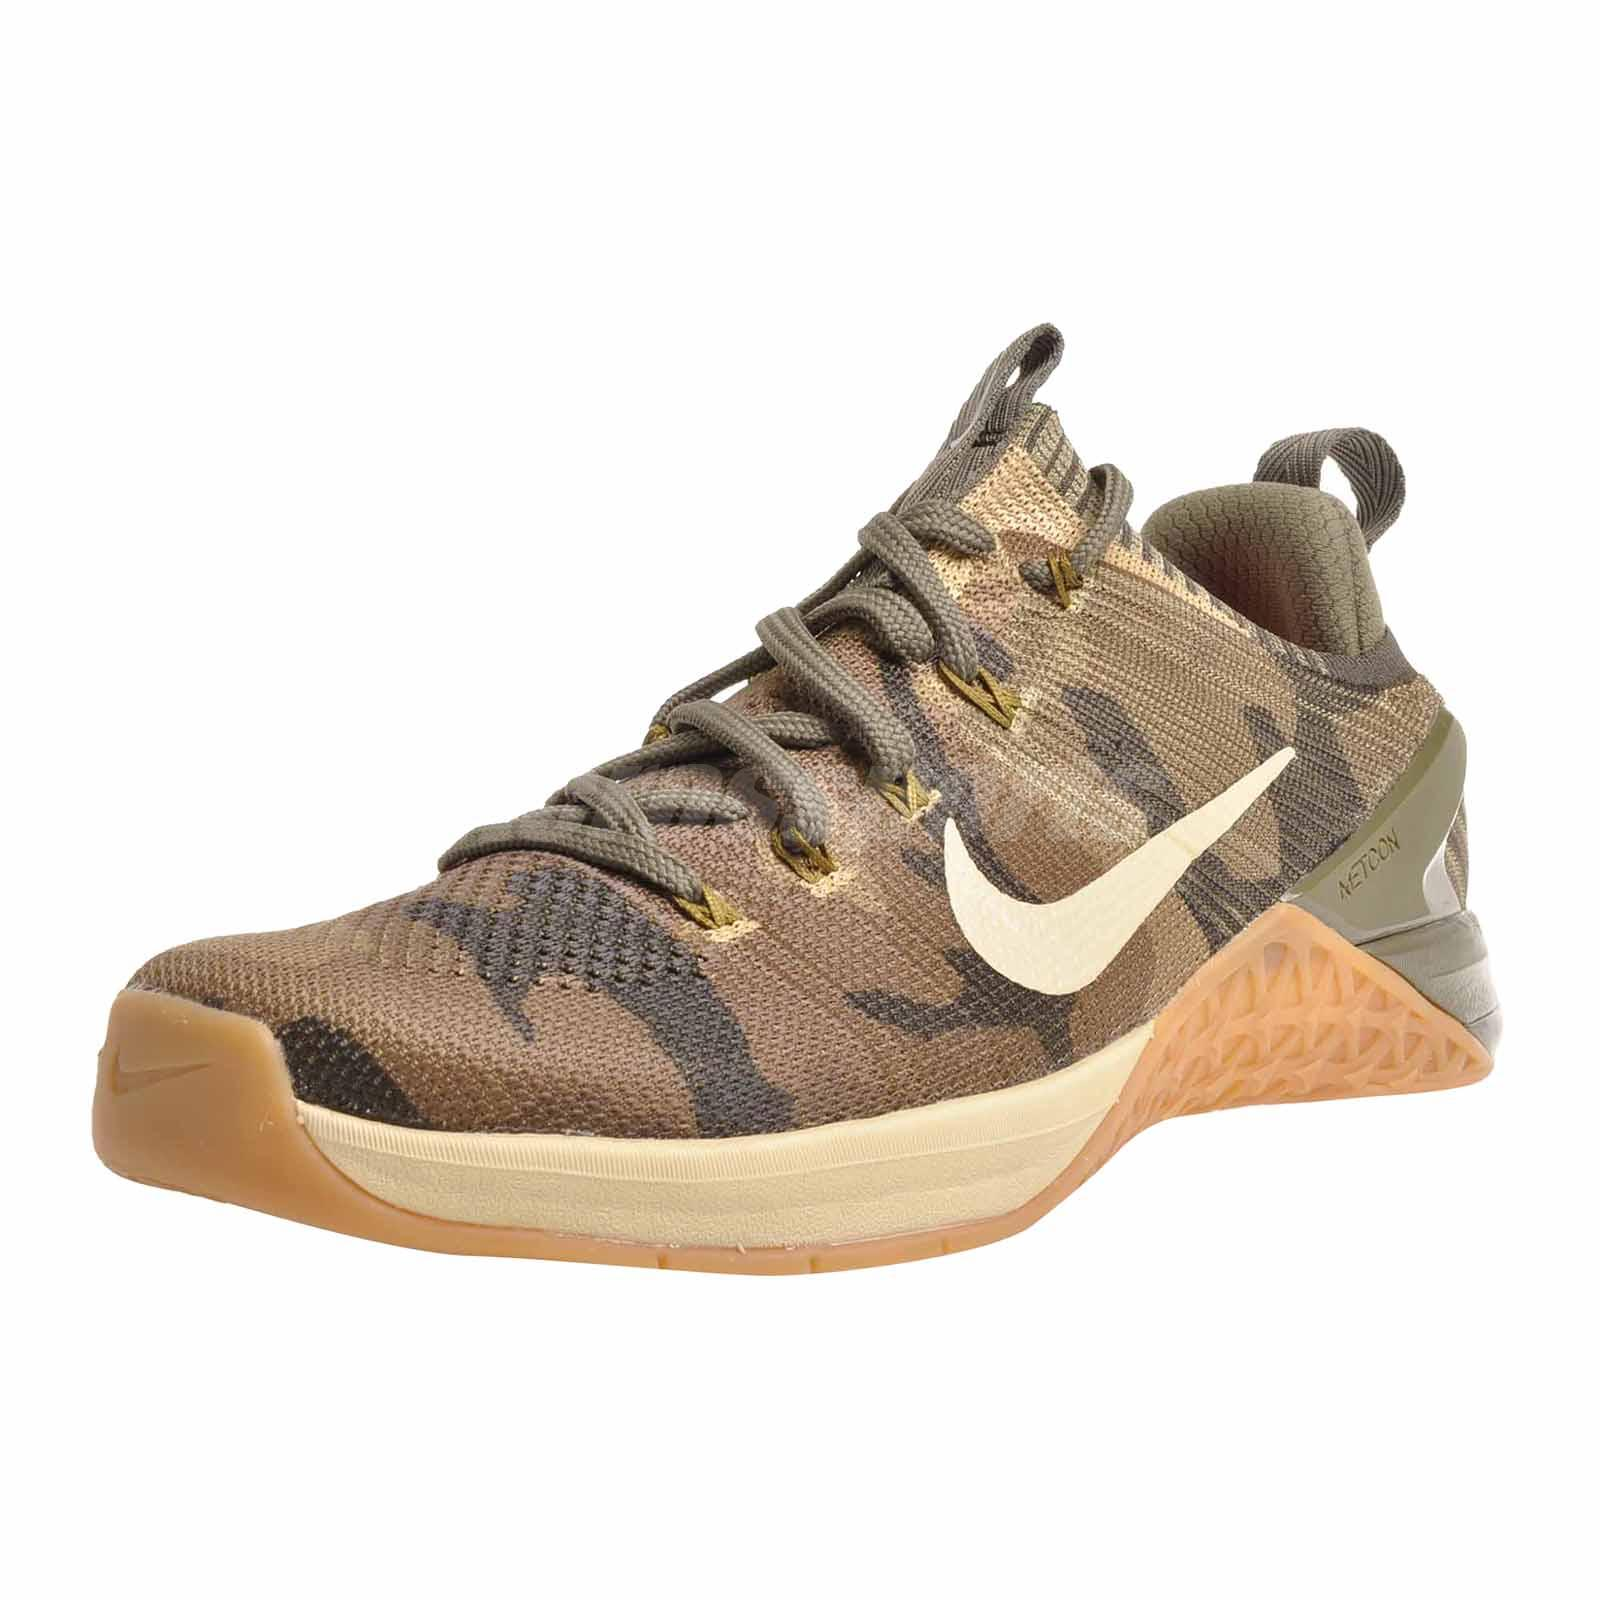 4e07ac12d4a3 Nike Metcon DSX Flyknit 2 Mens Cross Training Shoes Trainers Olive ...